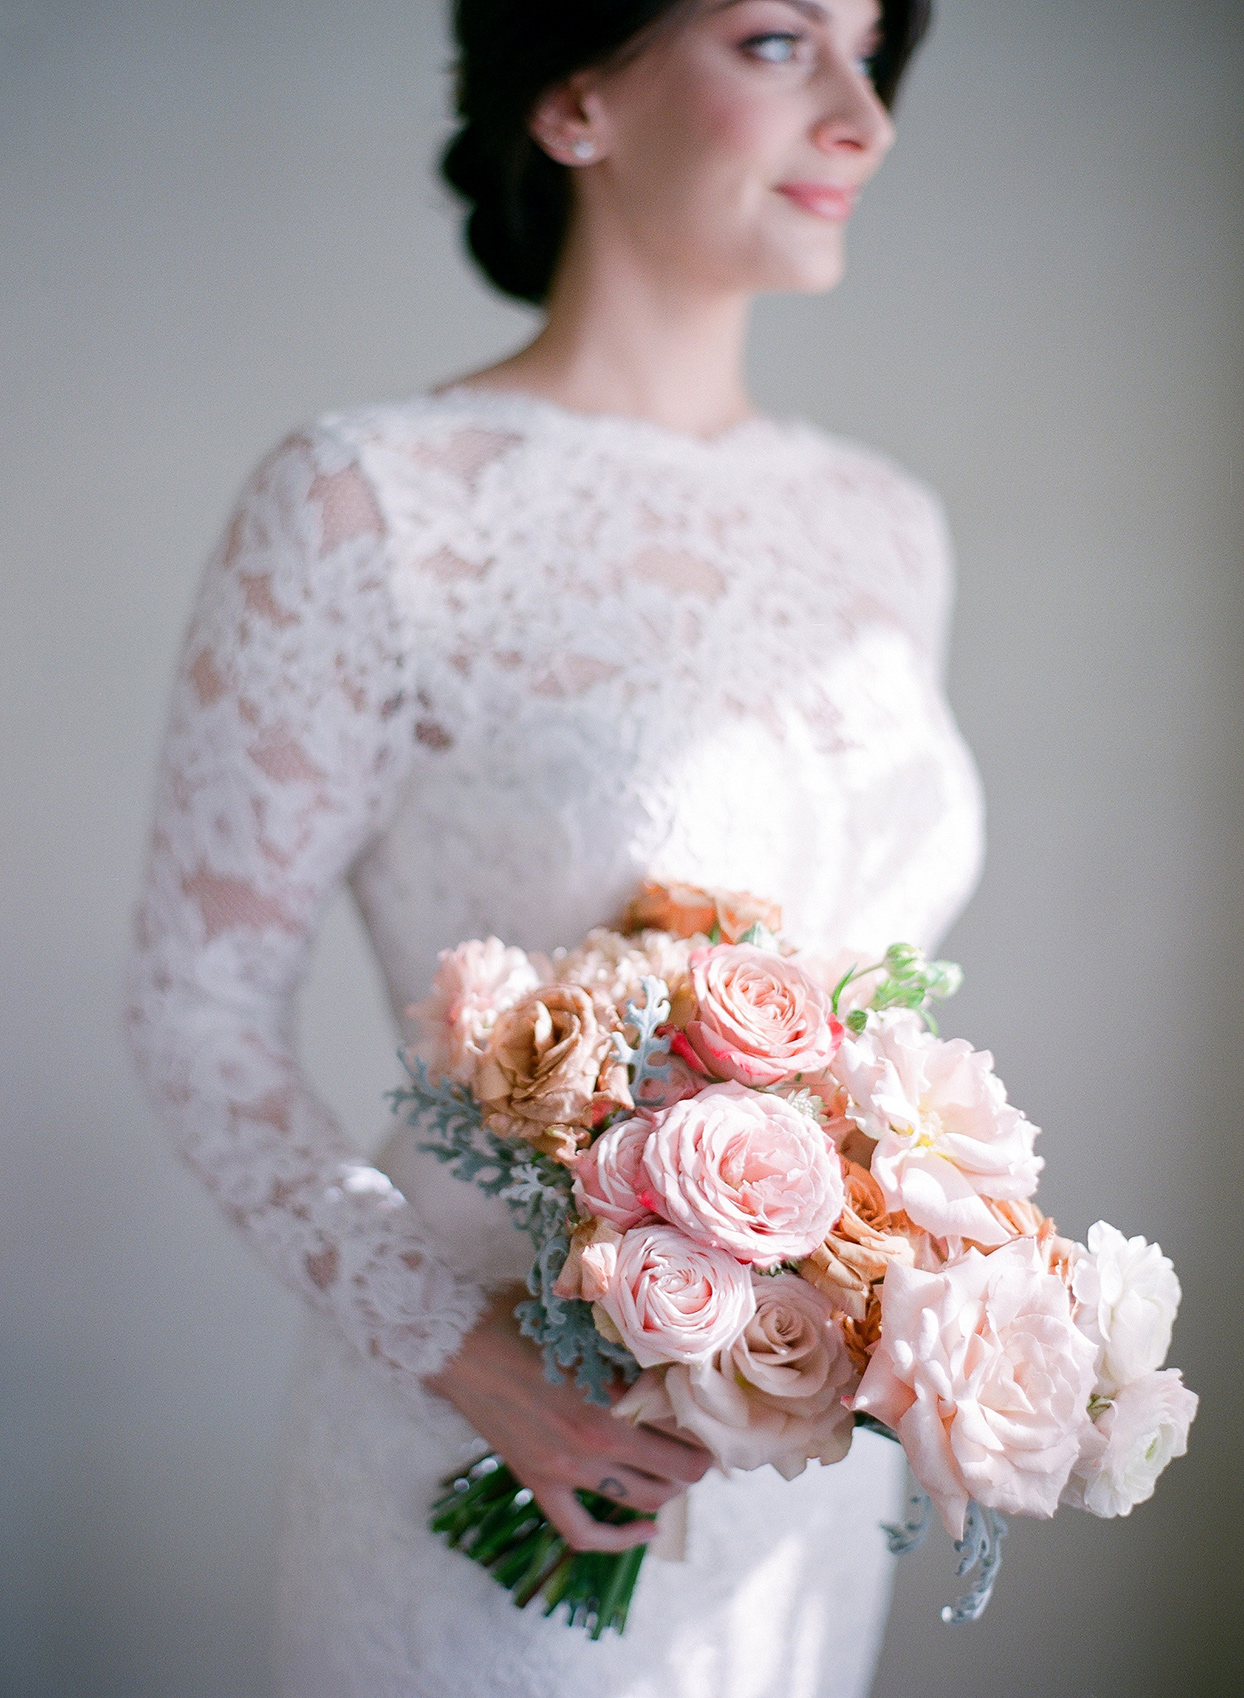 bride in white lace dress holding pastel rose bouquet